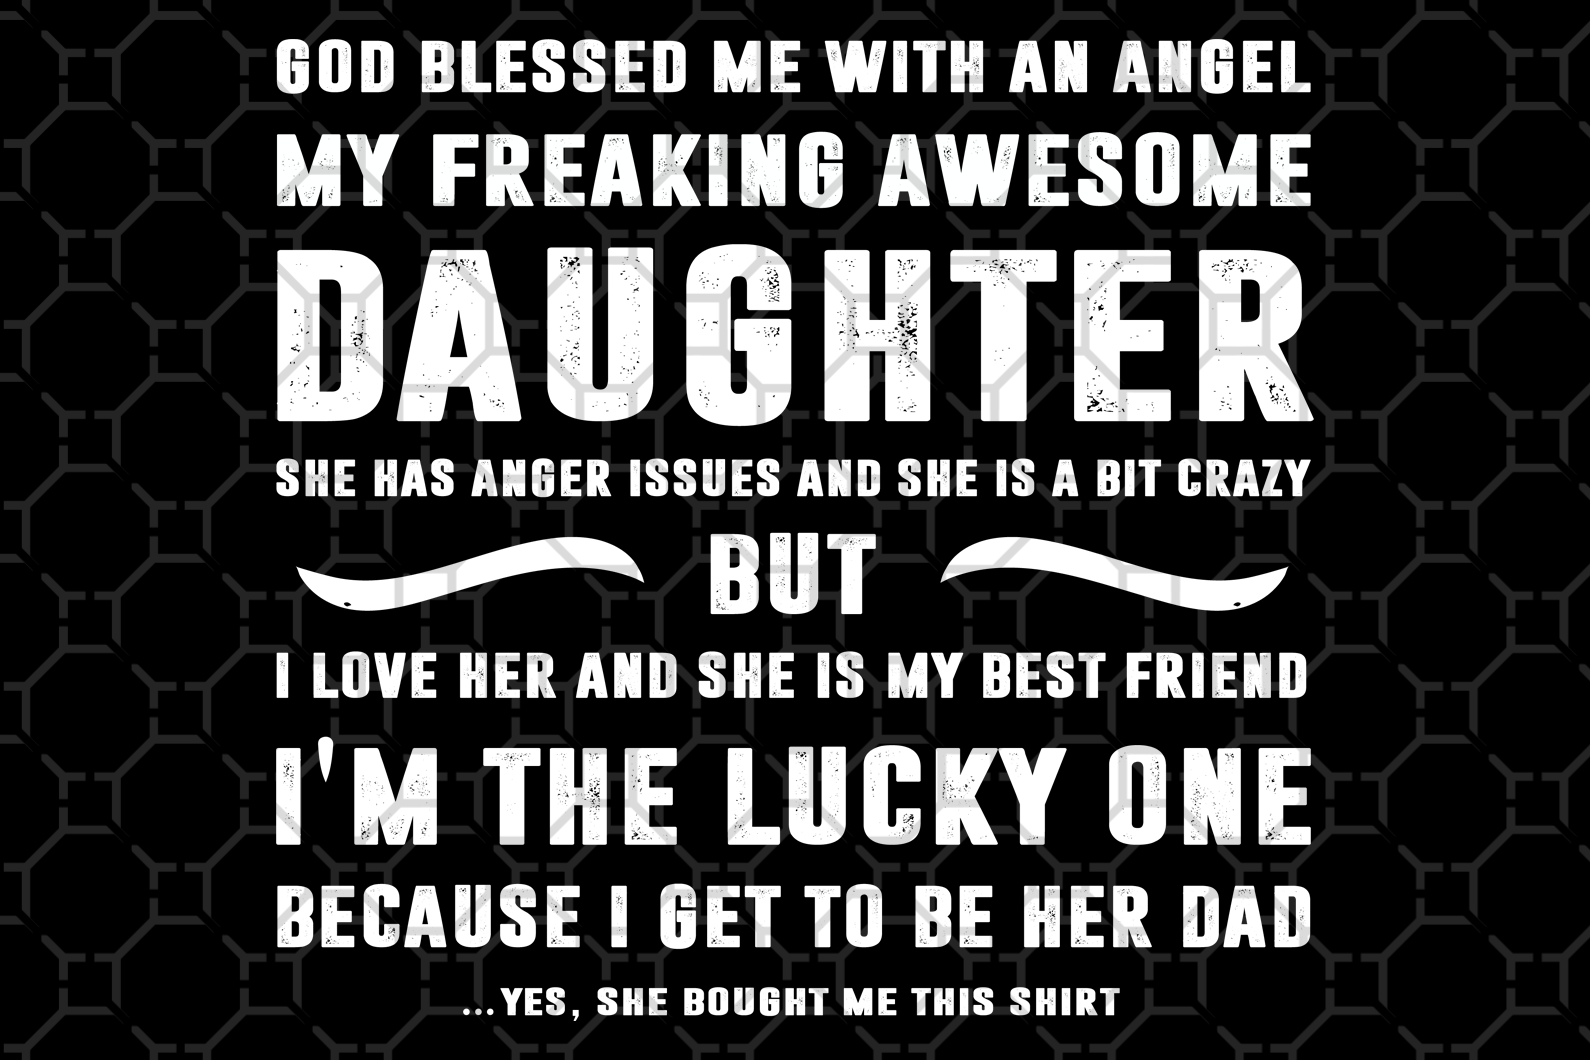 God blessed me with angel my freaking awesome,happy fathers day gift,happy fathers day,love father,father gift,fathers day shirt, gift for father,happy fathers day gift,nurse svg, love daddy, best dad ever, best dad, best gift,